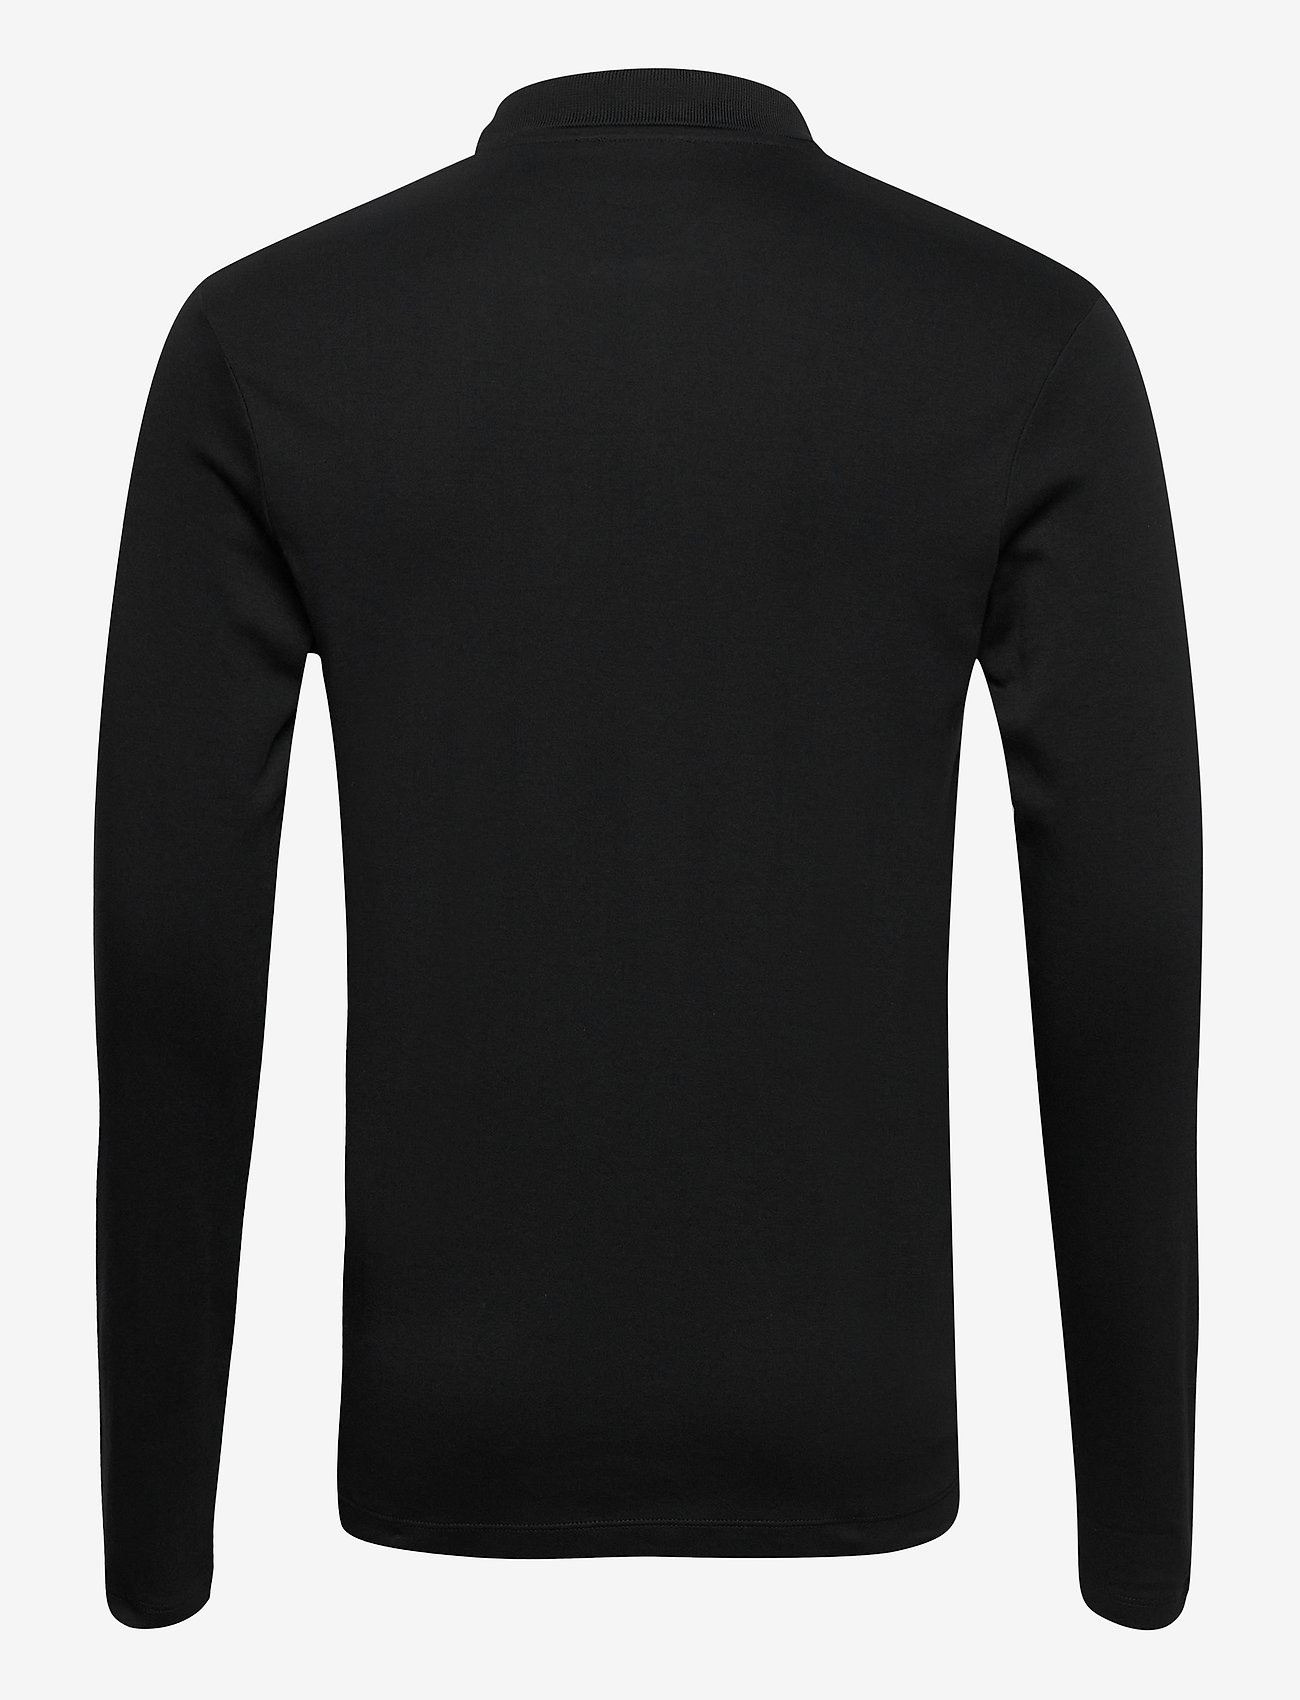 Selected Homme - SLHPARIS LS POLO B NOOS - pitkähihaiset - black - 1